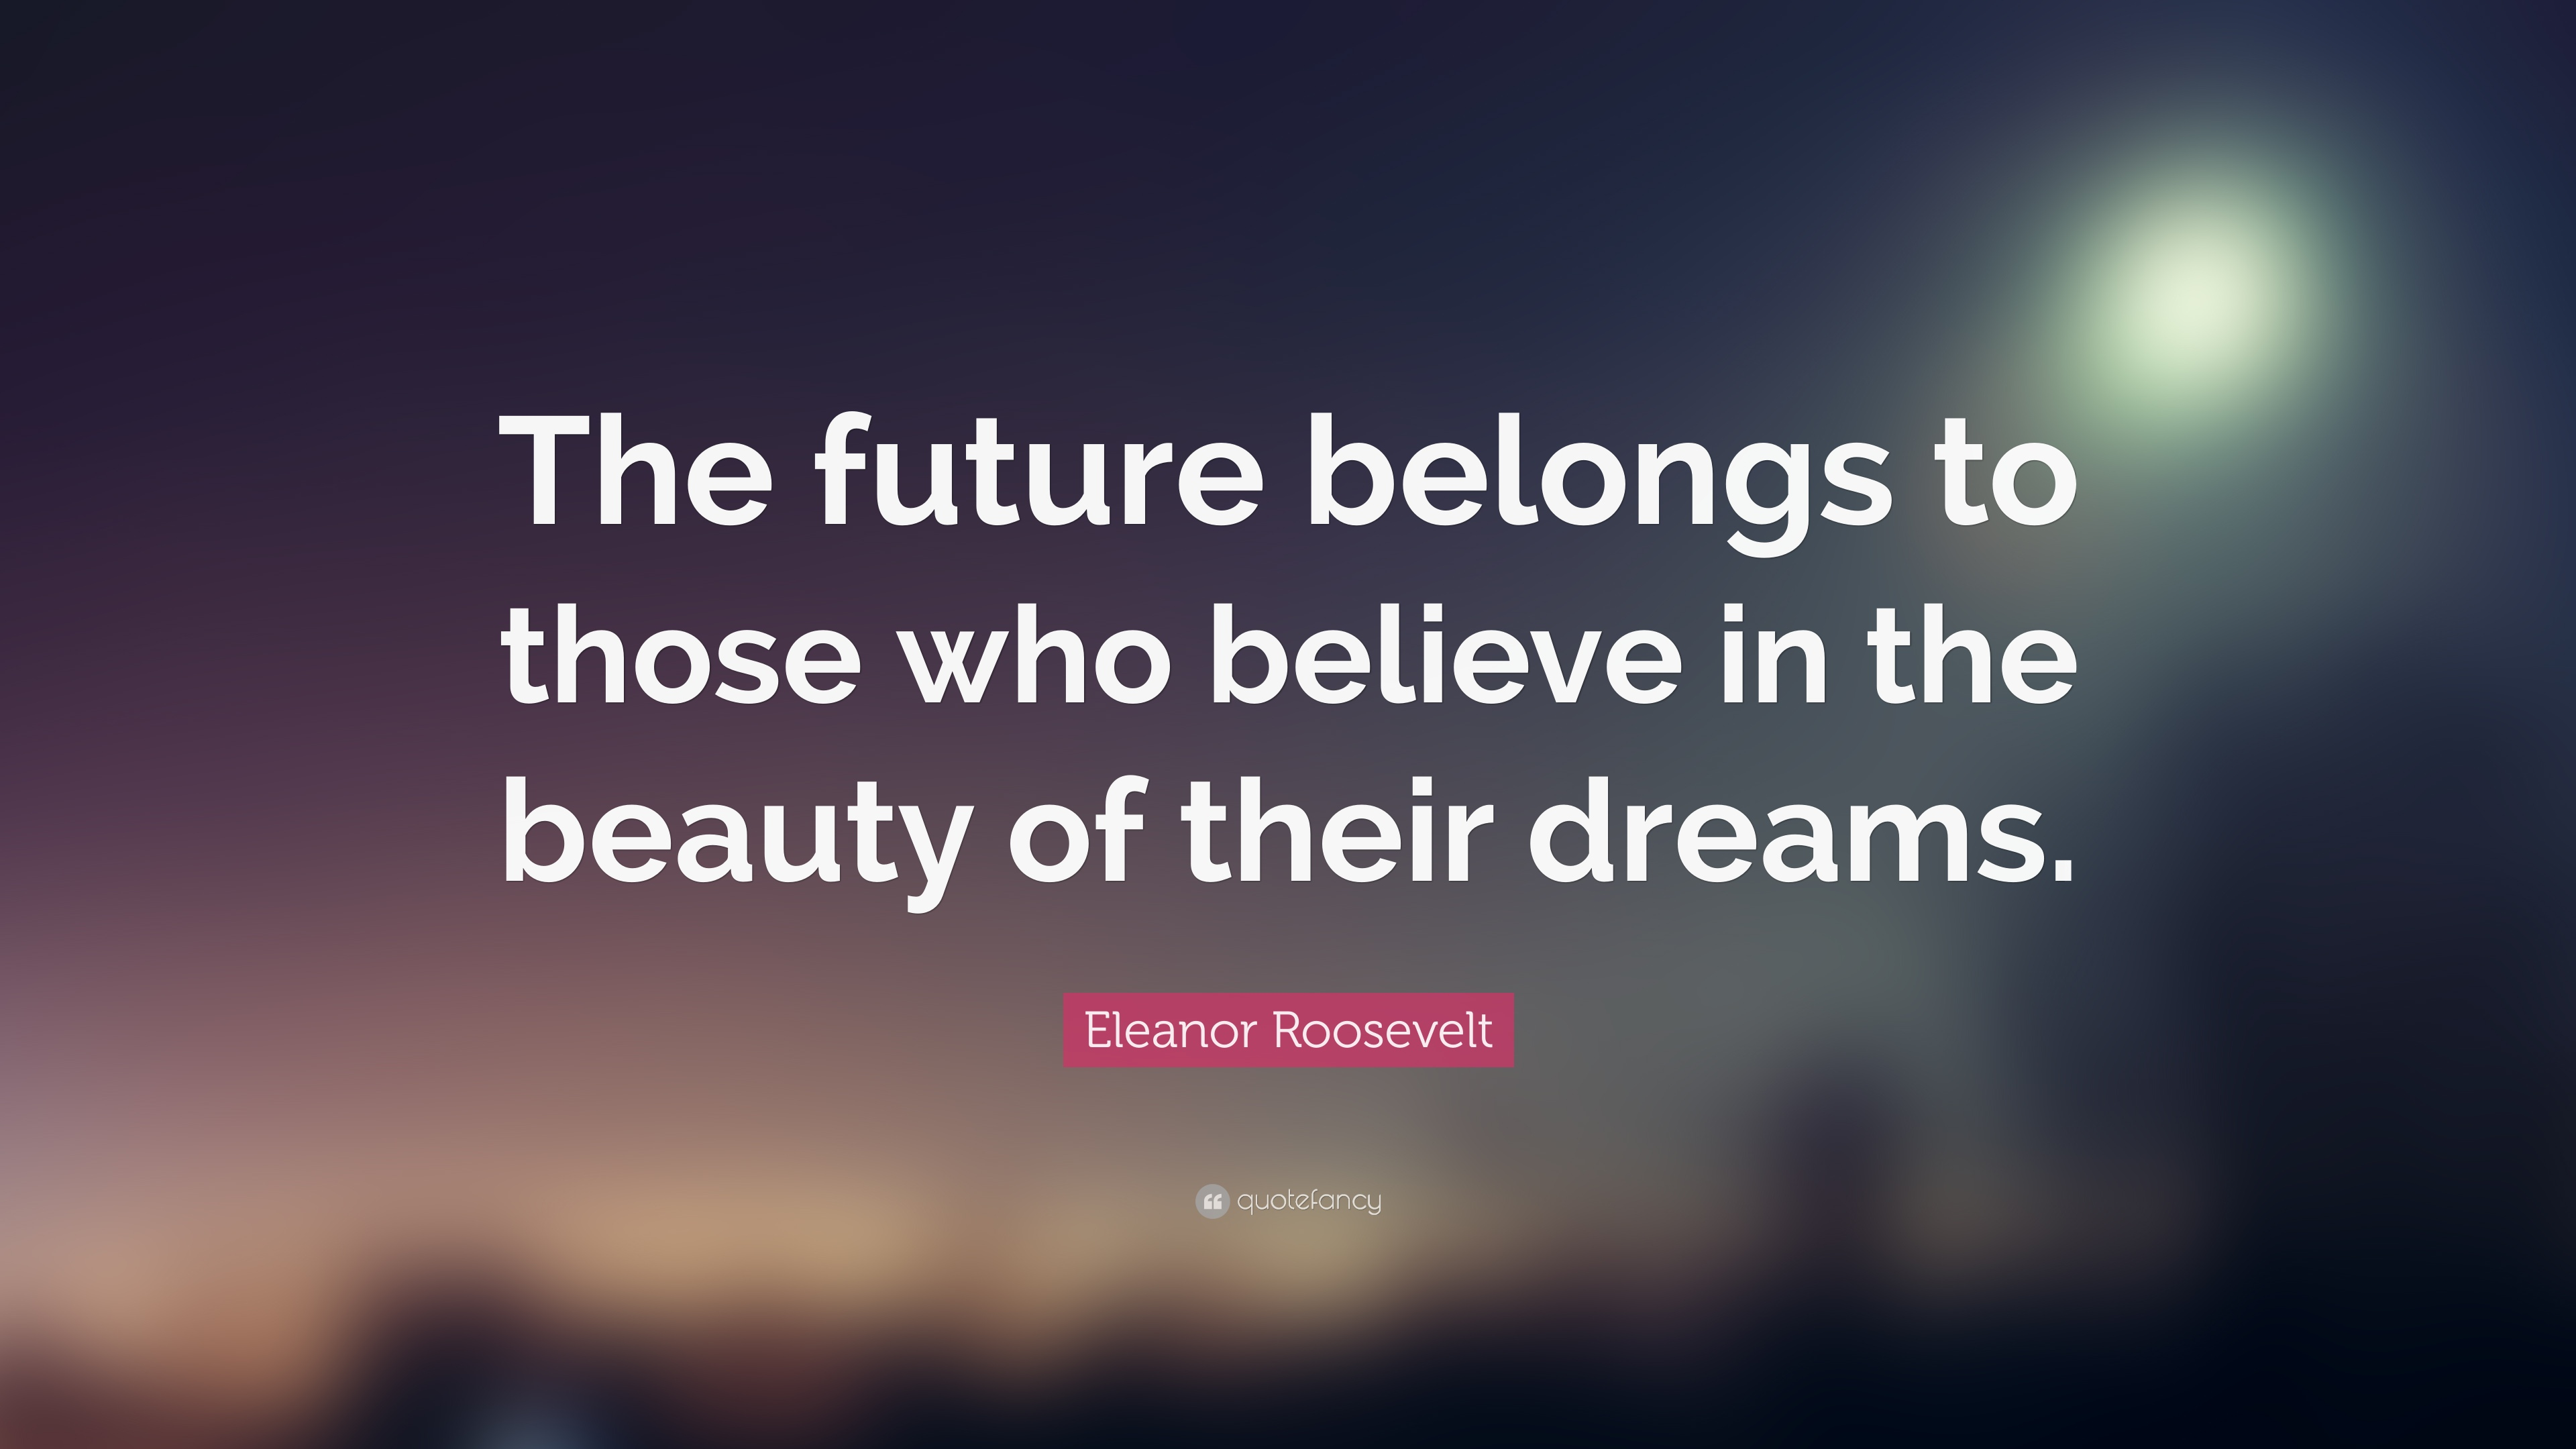 Eleanor Roosevelt Quote The Future Belongs To Those Who Believe In Beauty Of